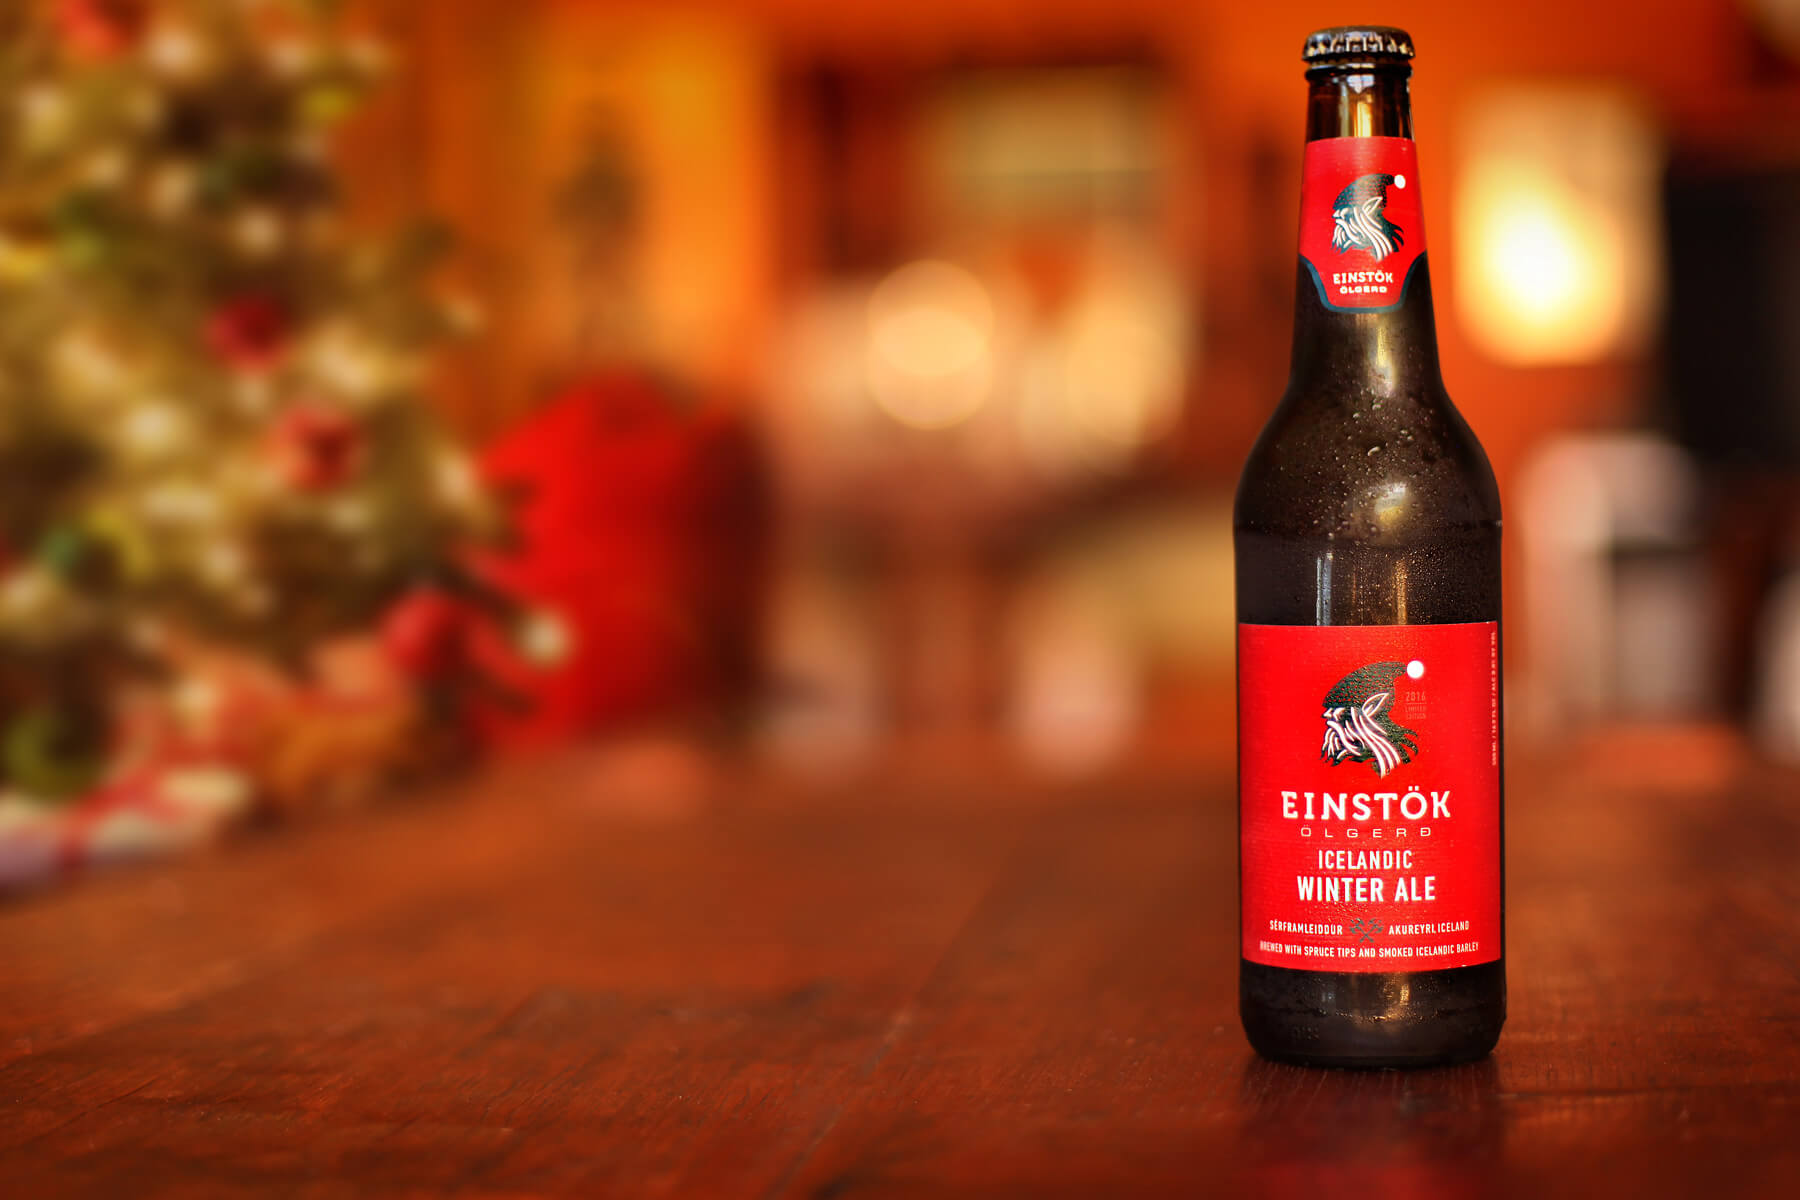 Einstök Ölgerð Launches New Vintage-Dated Winter Ale In U.S.